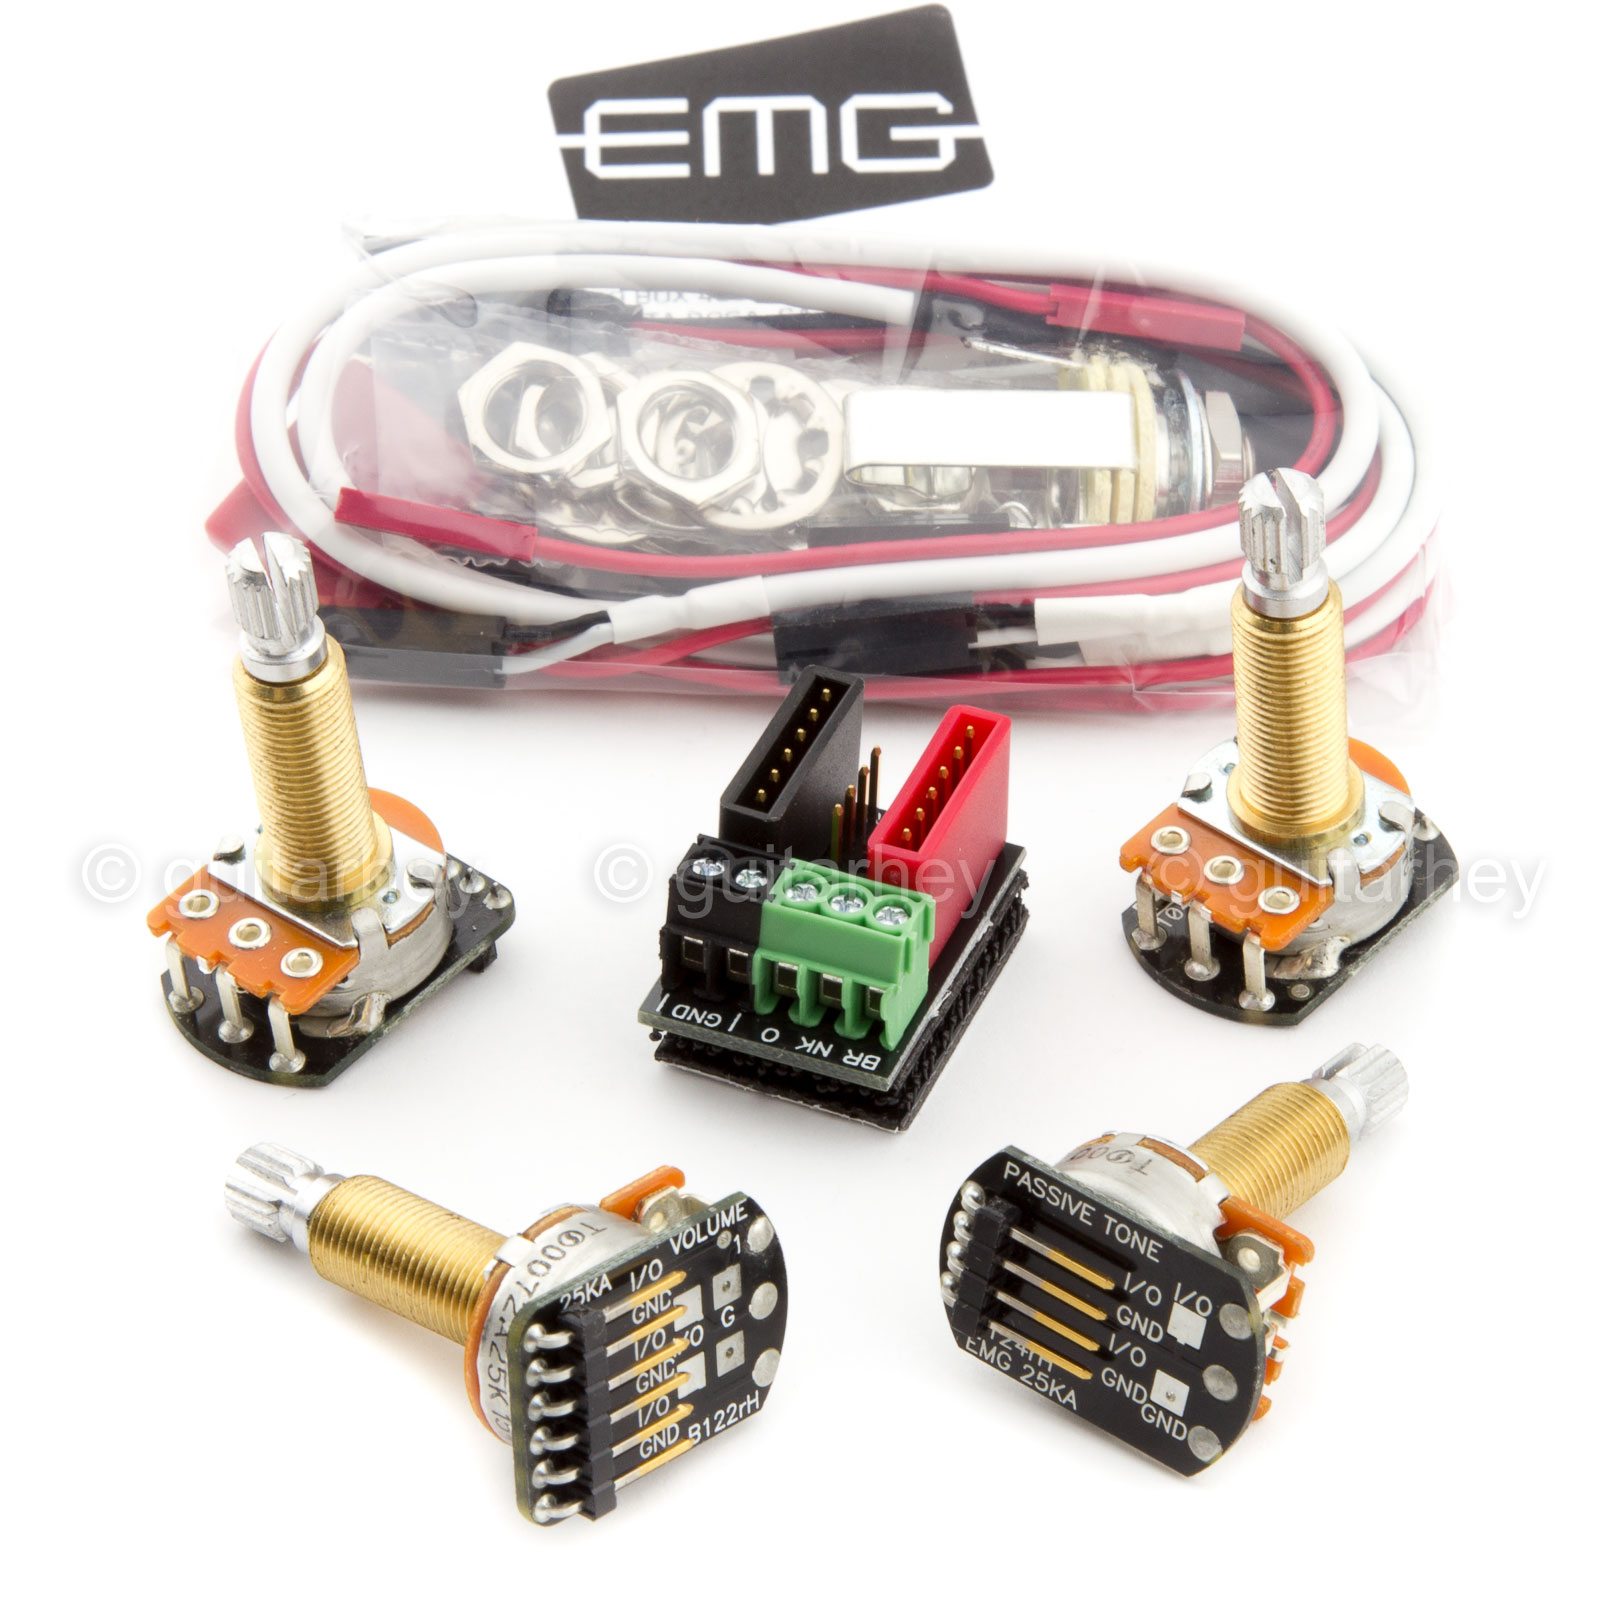 Emg Wiring Kit Uk Diagrams How To Wire Pickups New Solderless Conversion For 1 2 Bass Guitar Pickup